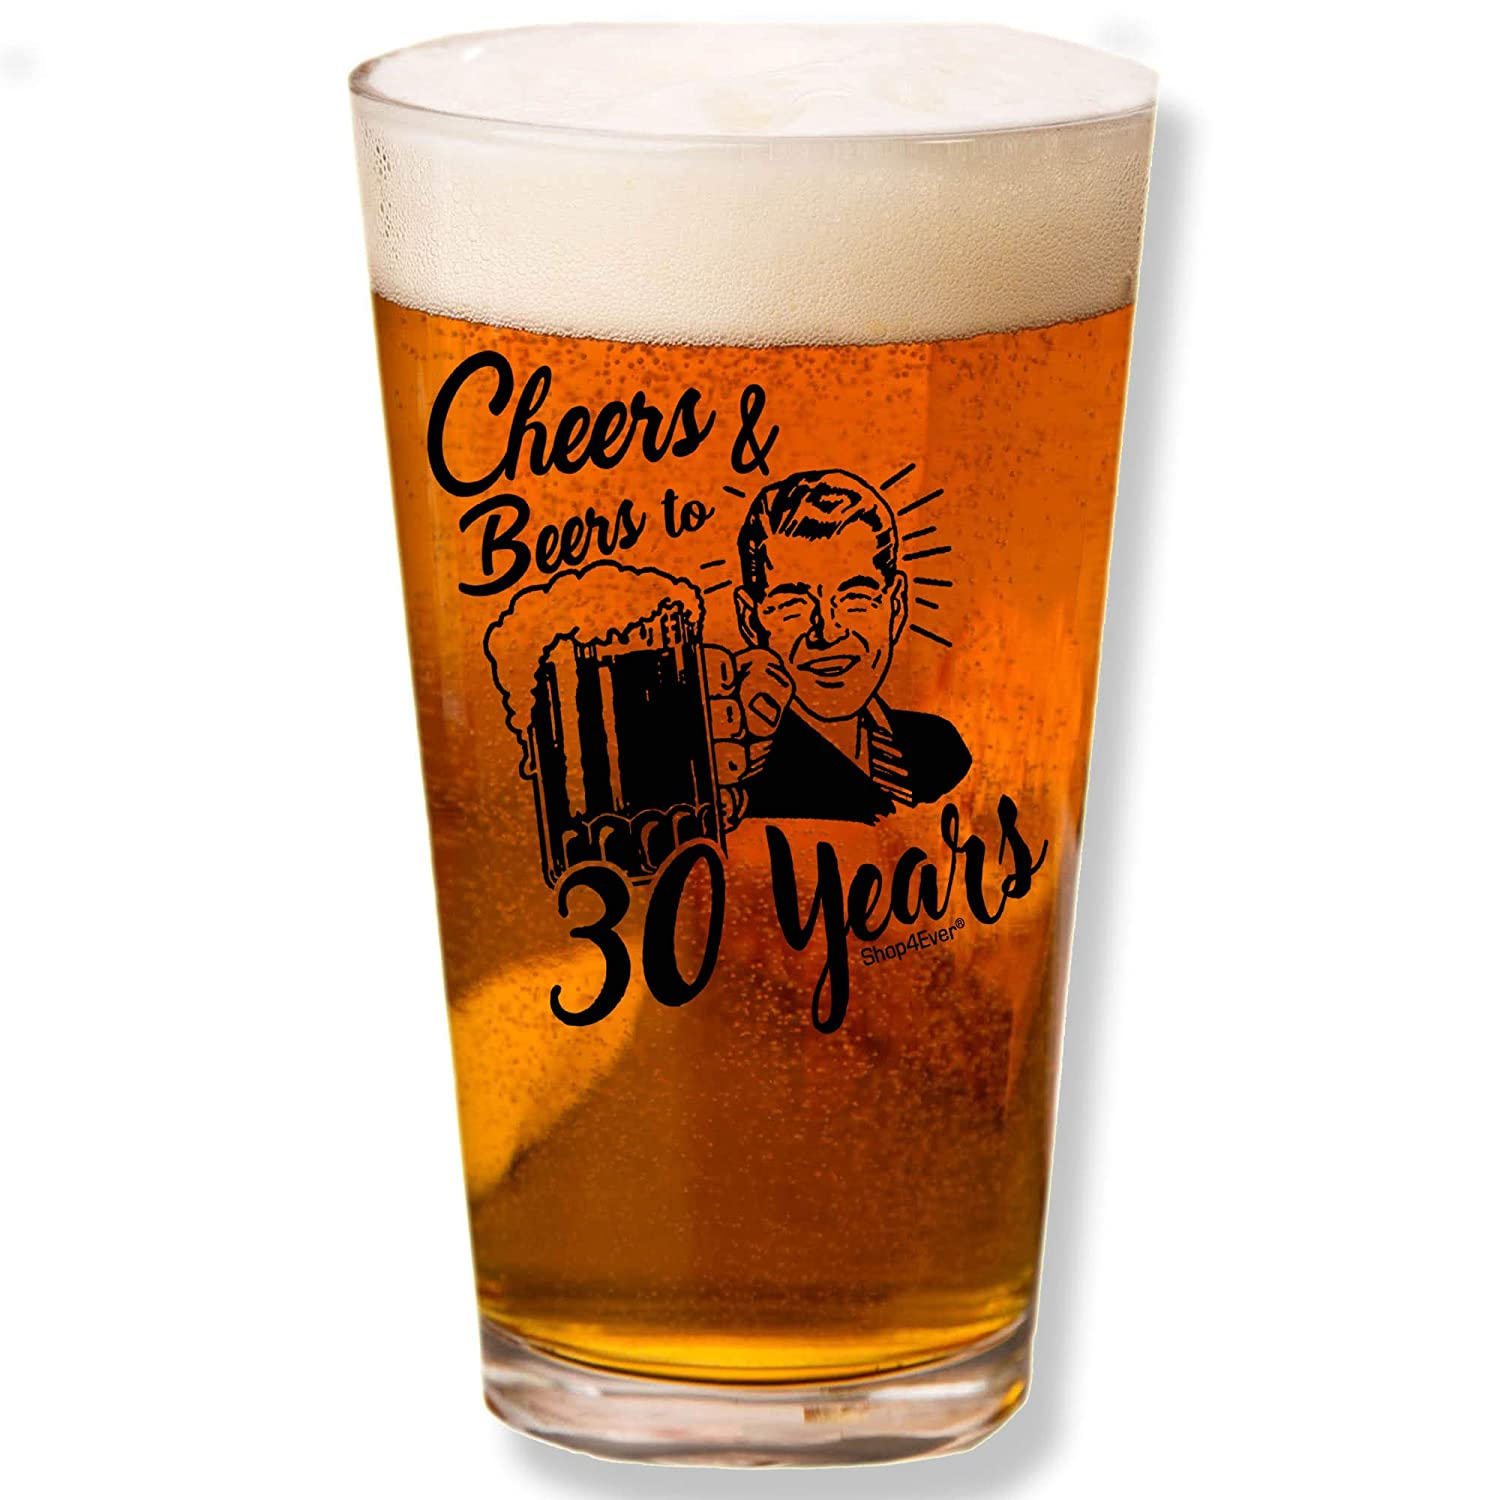 Blk, 30 Yrs Shop4Ever Cheers /& Beers To 30 Years Printed Beer Pint Glass/~ 30th Birthday Gift ~